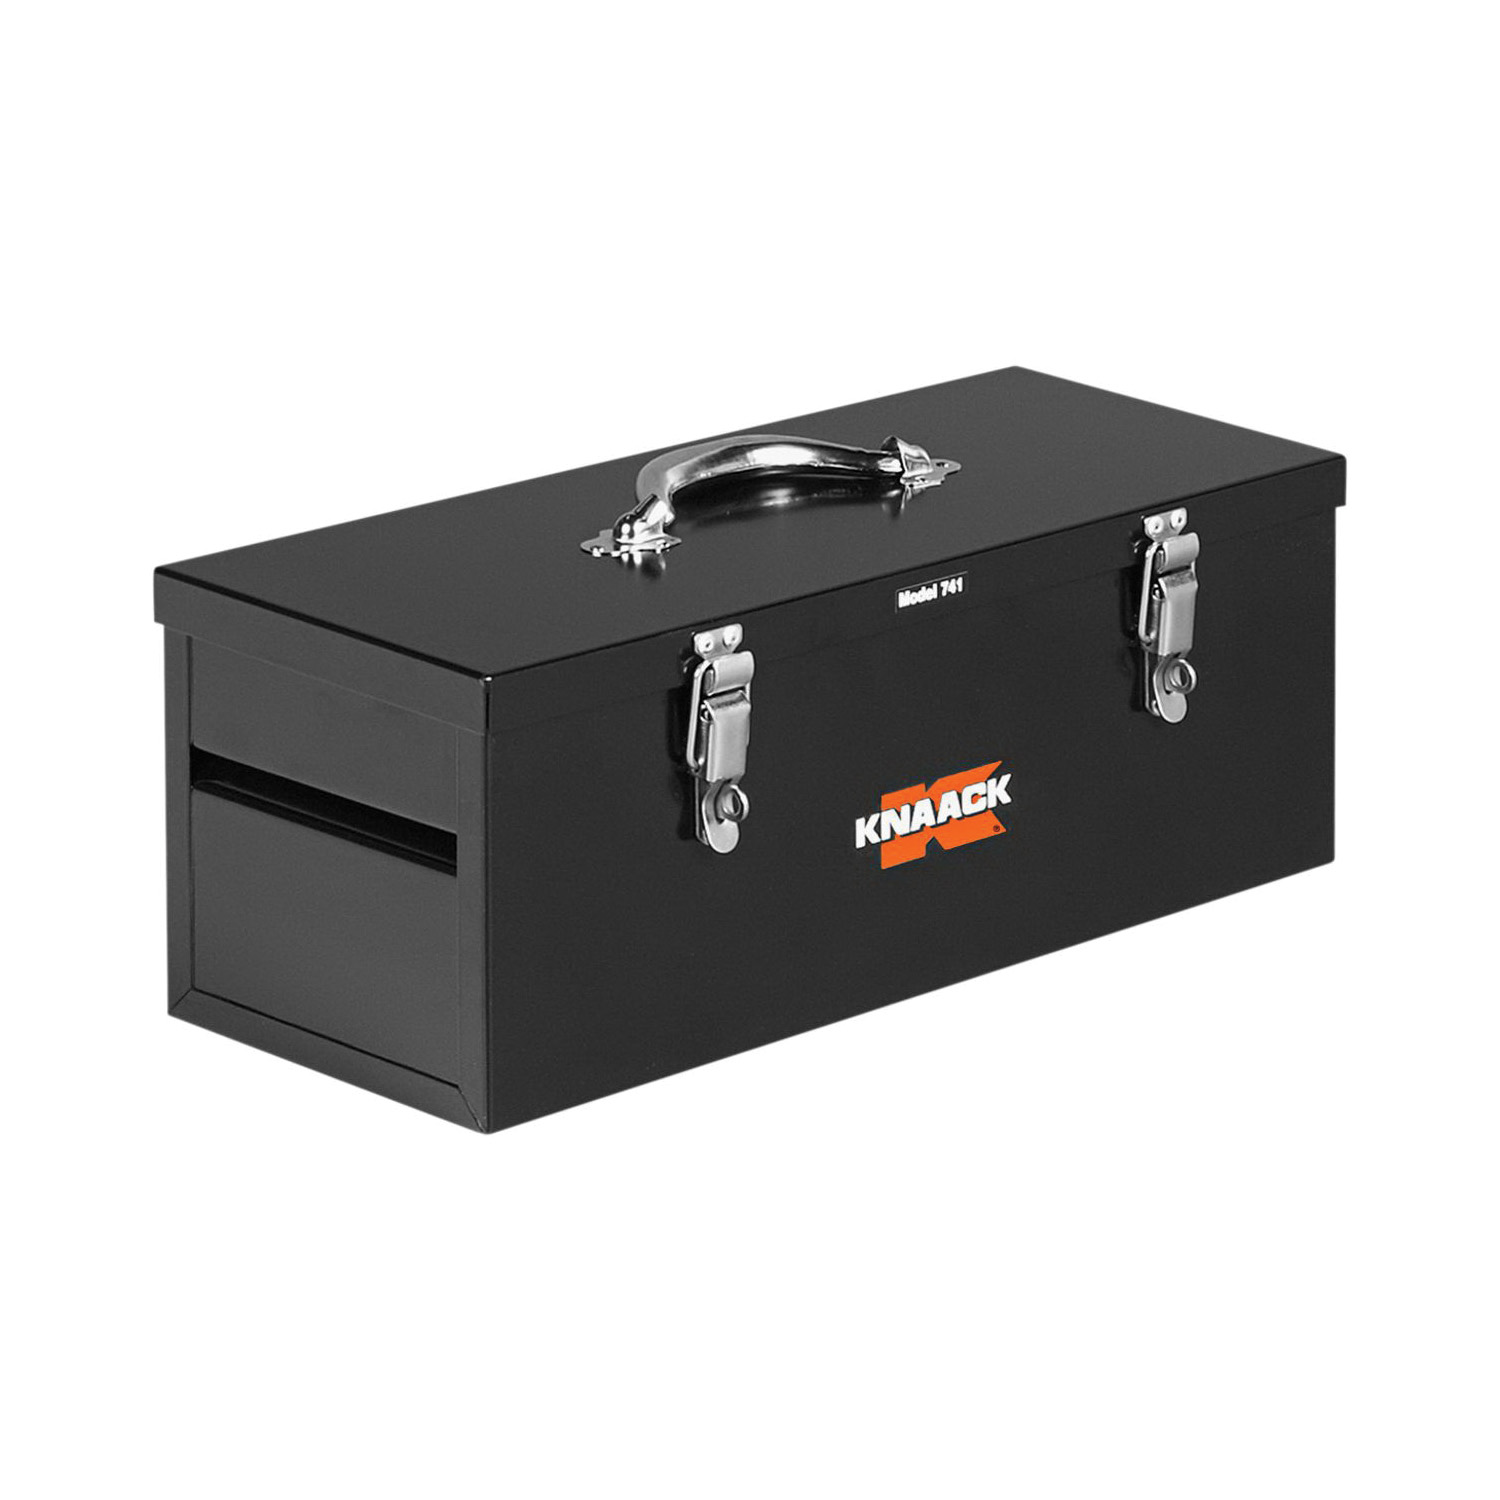 KNAACK® 741 Hand Tool Box, 8 in x 8 in W x 20 in D, 0.75 cu-ft Storage, Steel